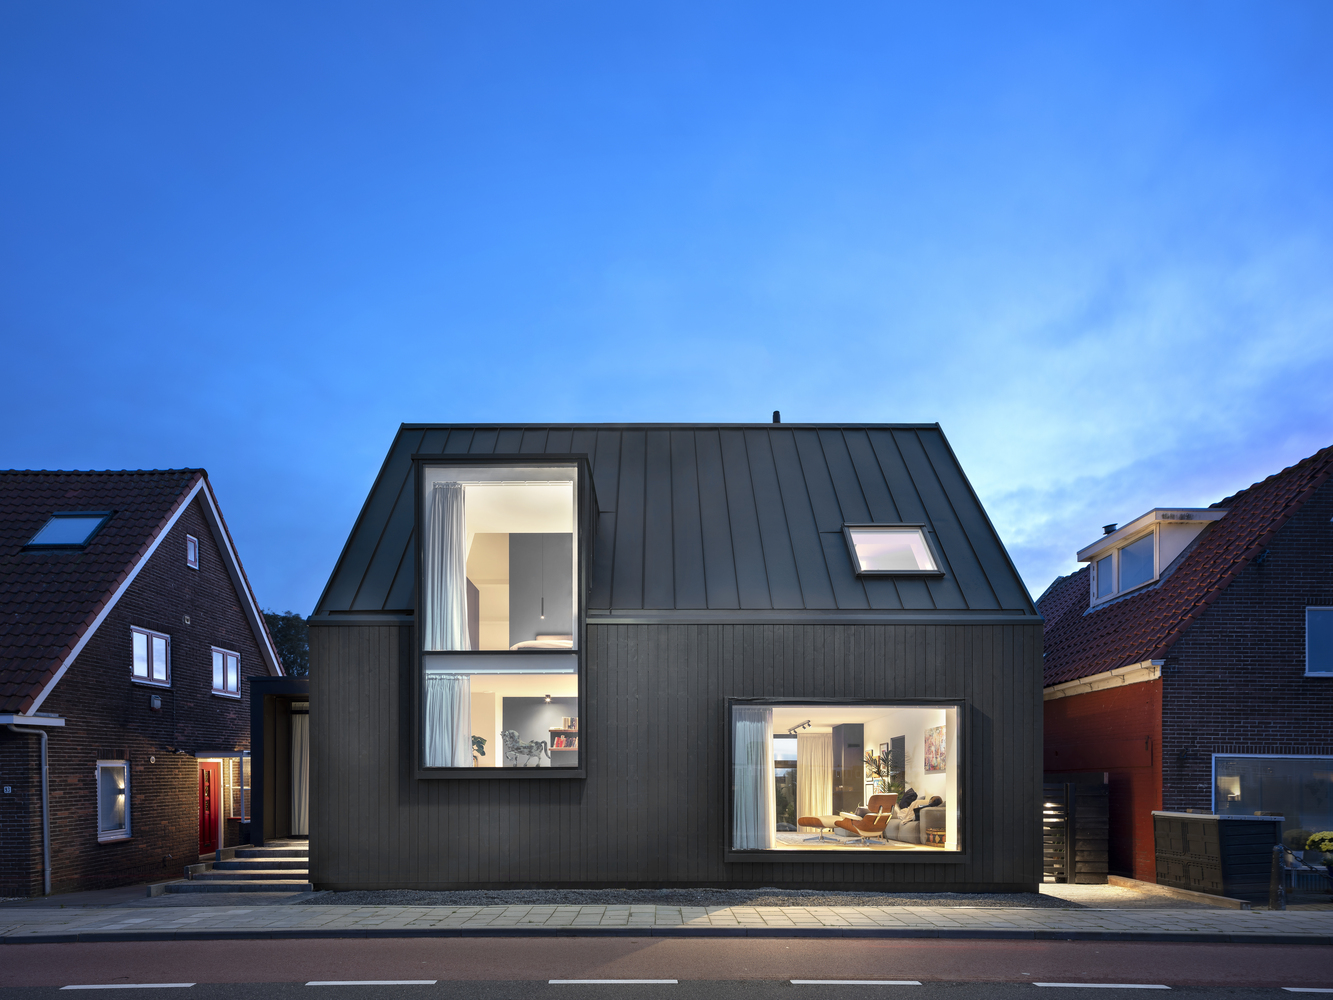 Black house with two large windows facing the street.